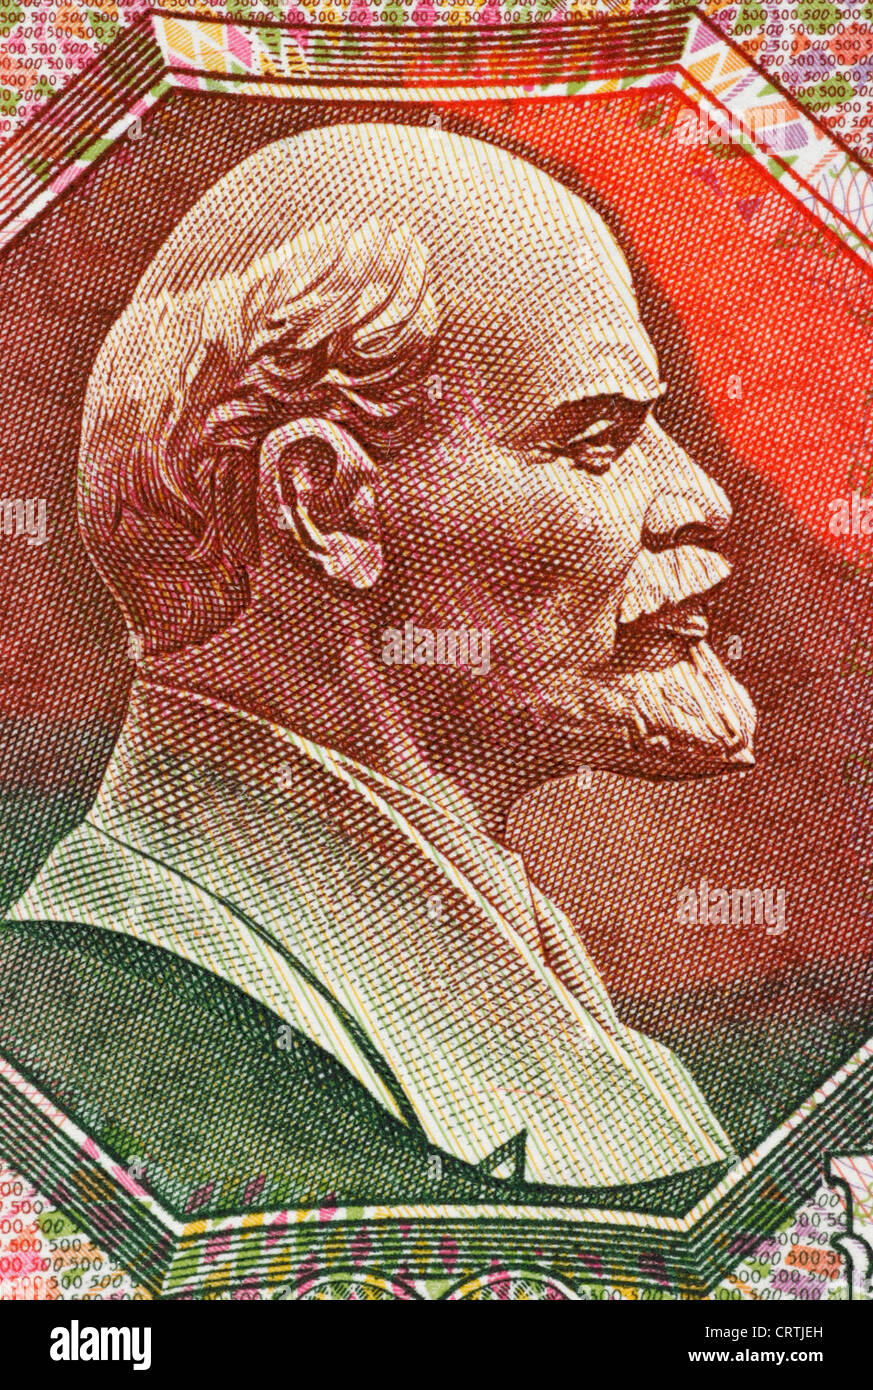 Lenin (1870-1924) on 500 Ruble 1992 Banknote from USSR. - Stock Image